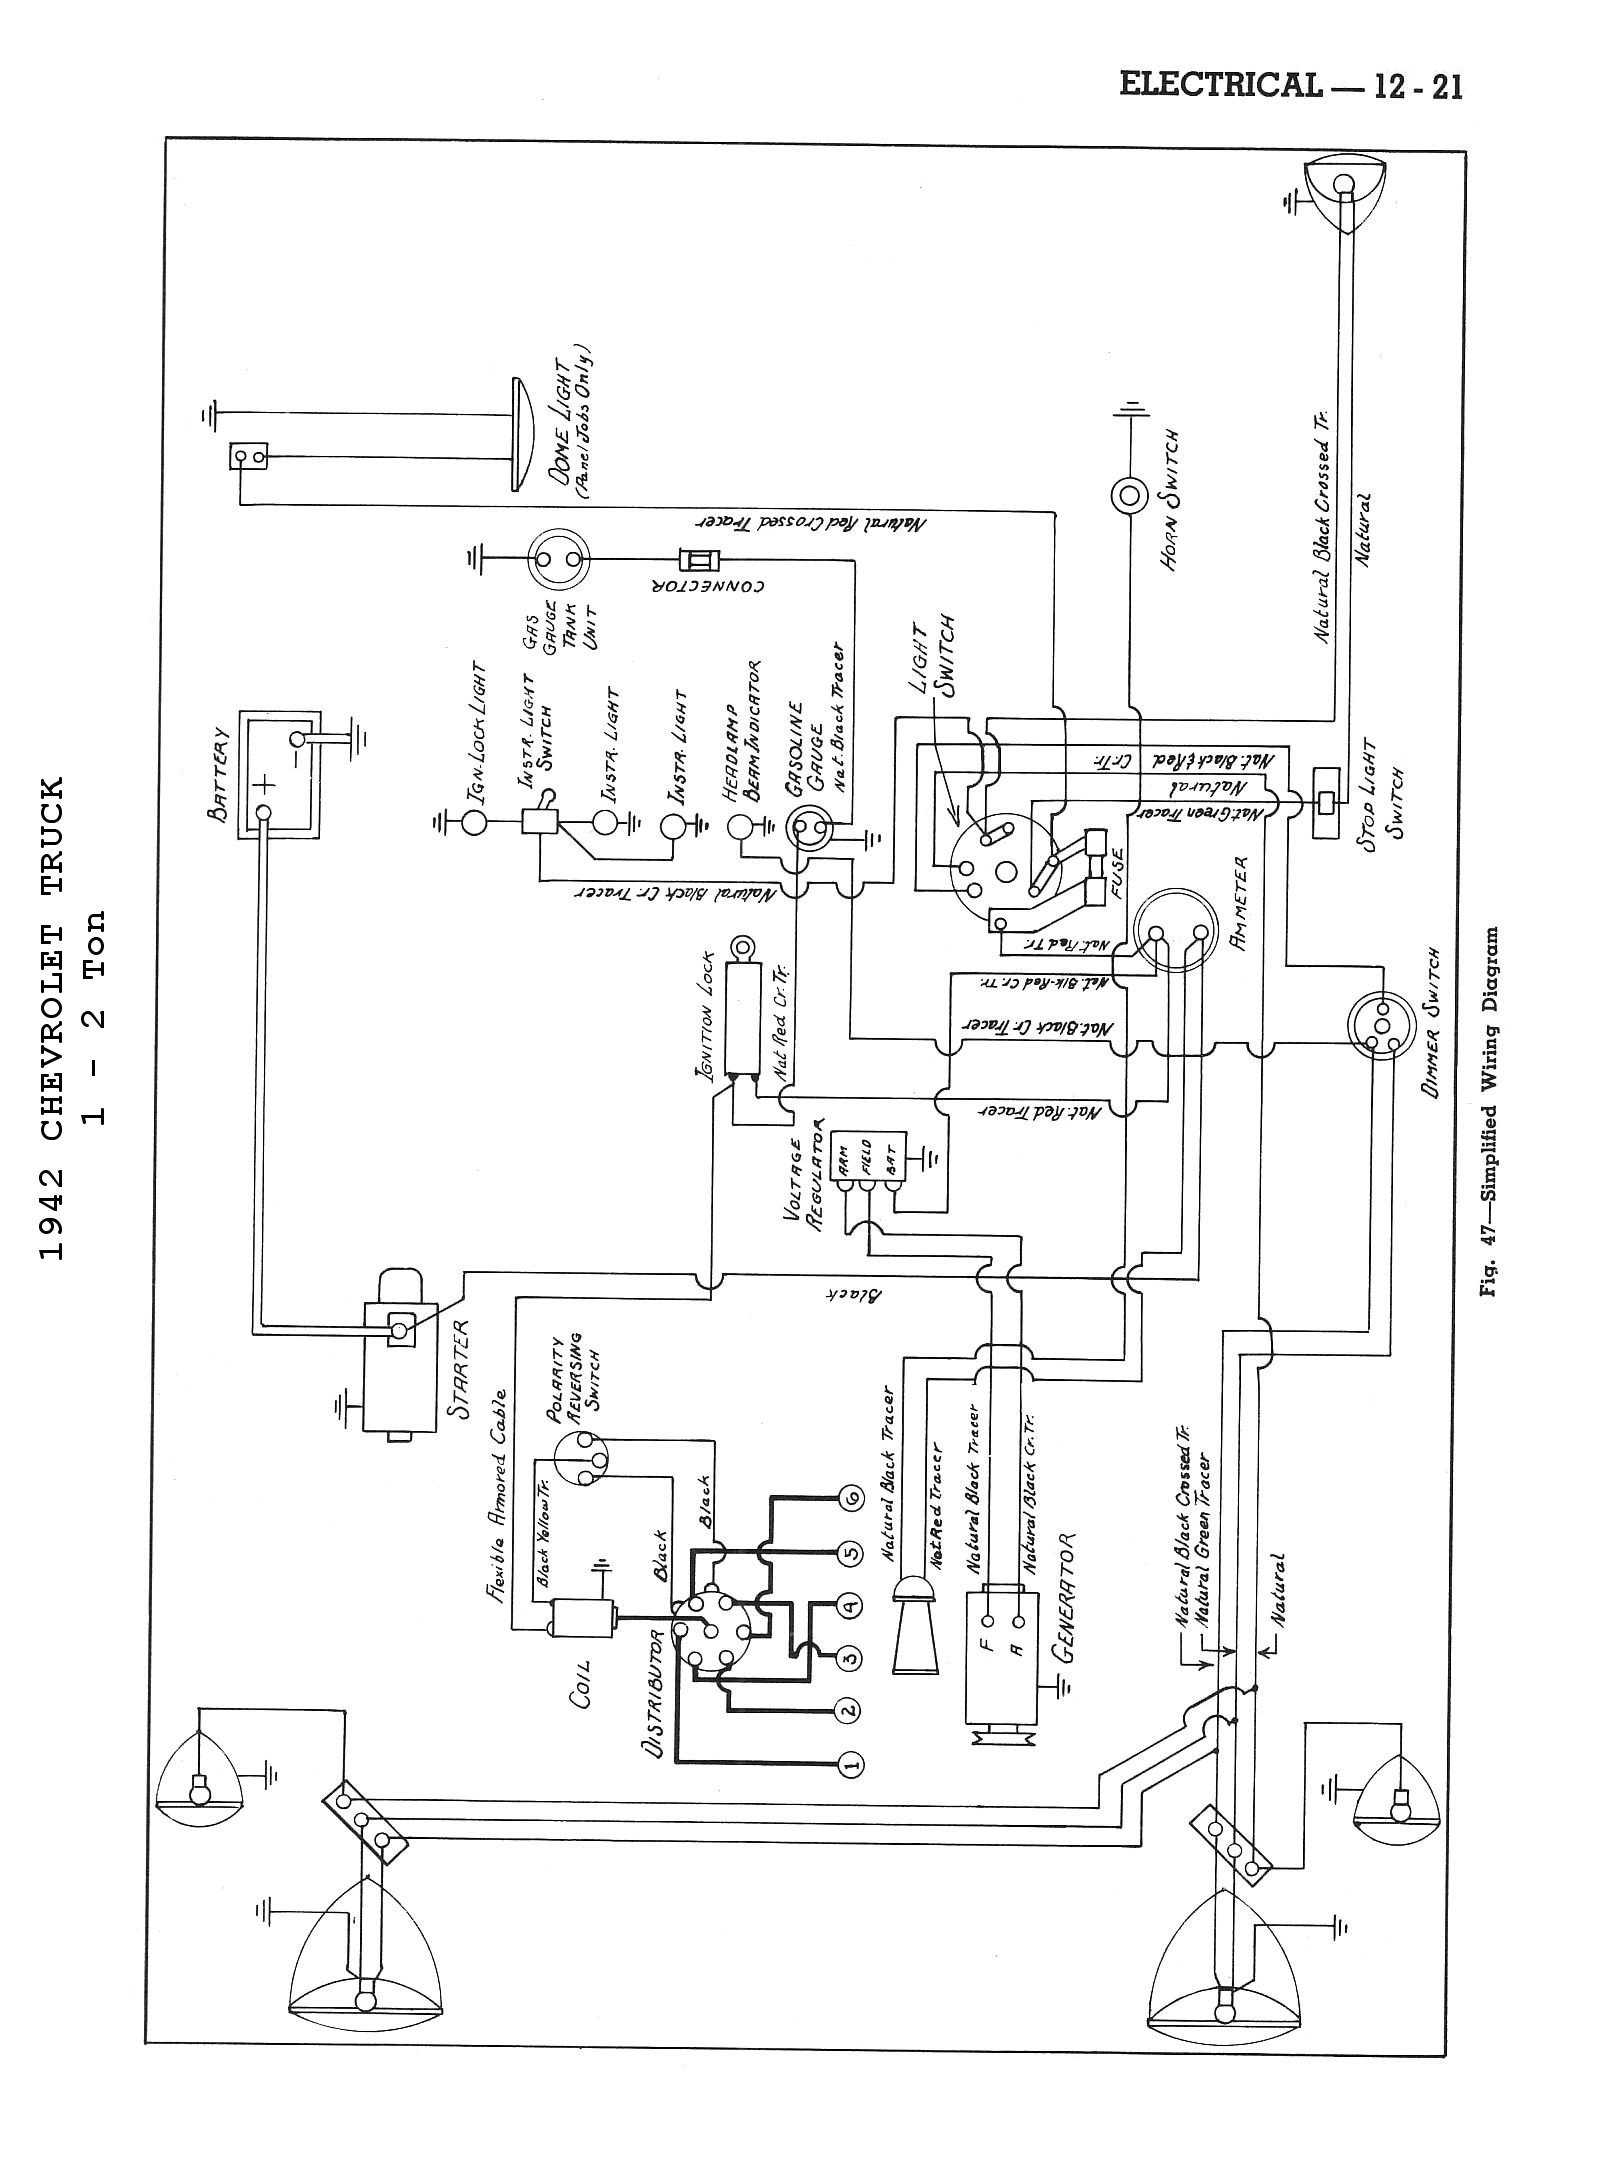 1978 Dodge Truck Wiring Diagram Awesome Image Magnum 1942 4x2